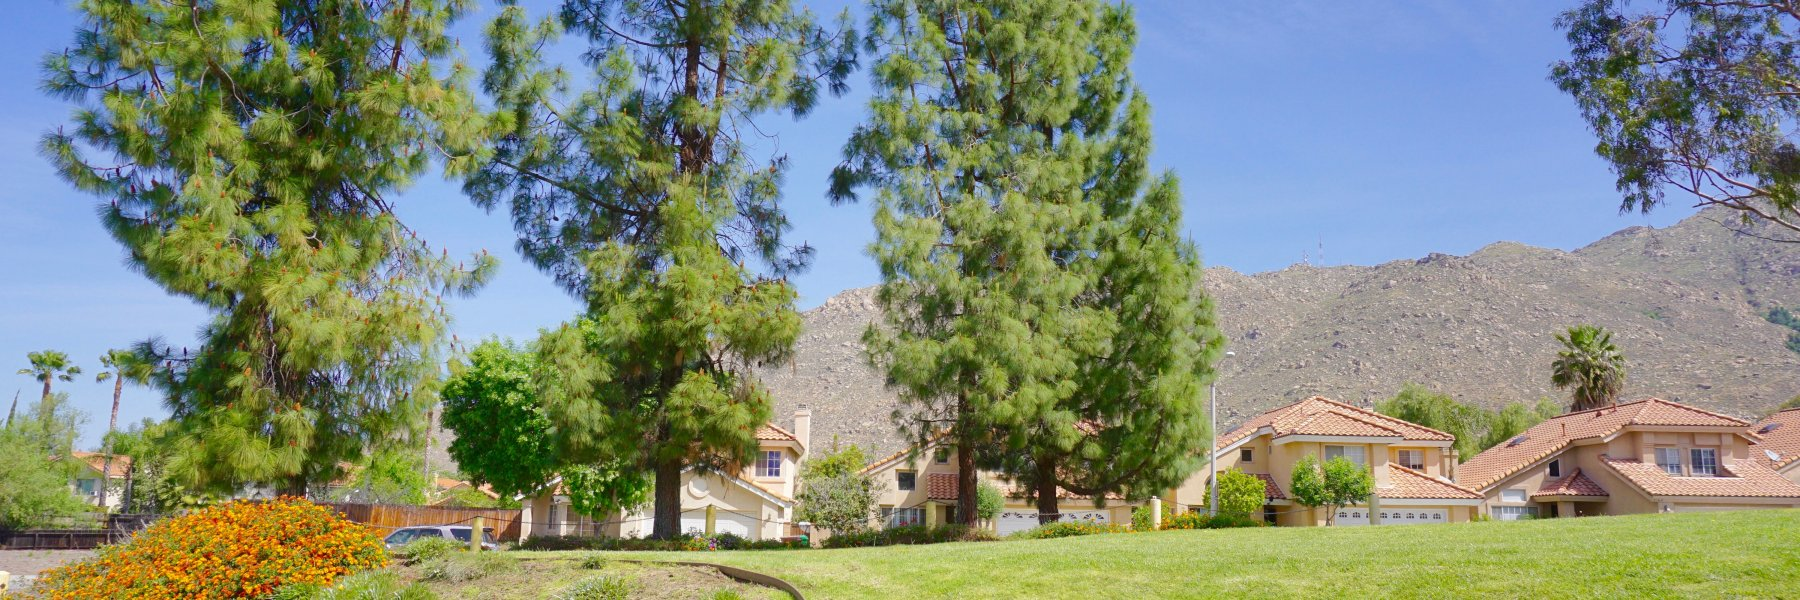 Box Springs is a community of homes in Moreno Valley California